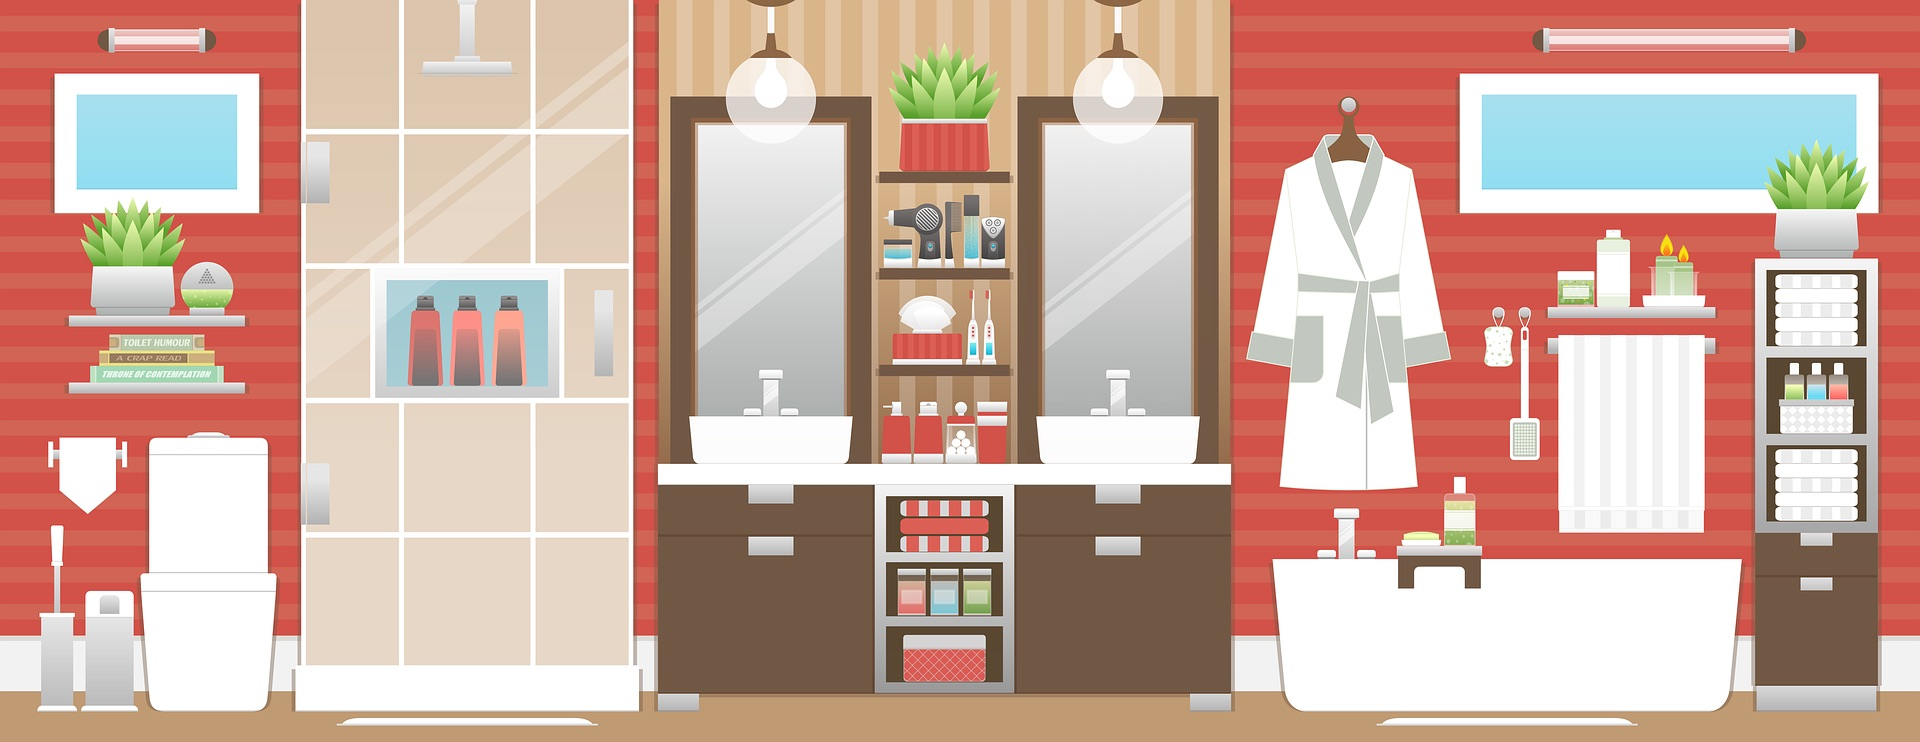 Bathroom interior illustration